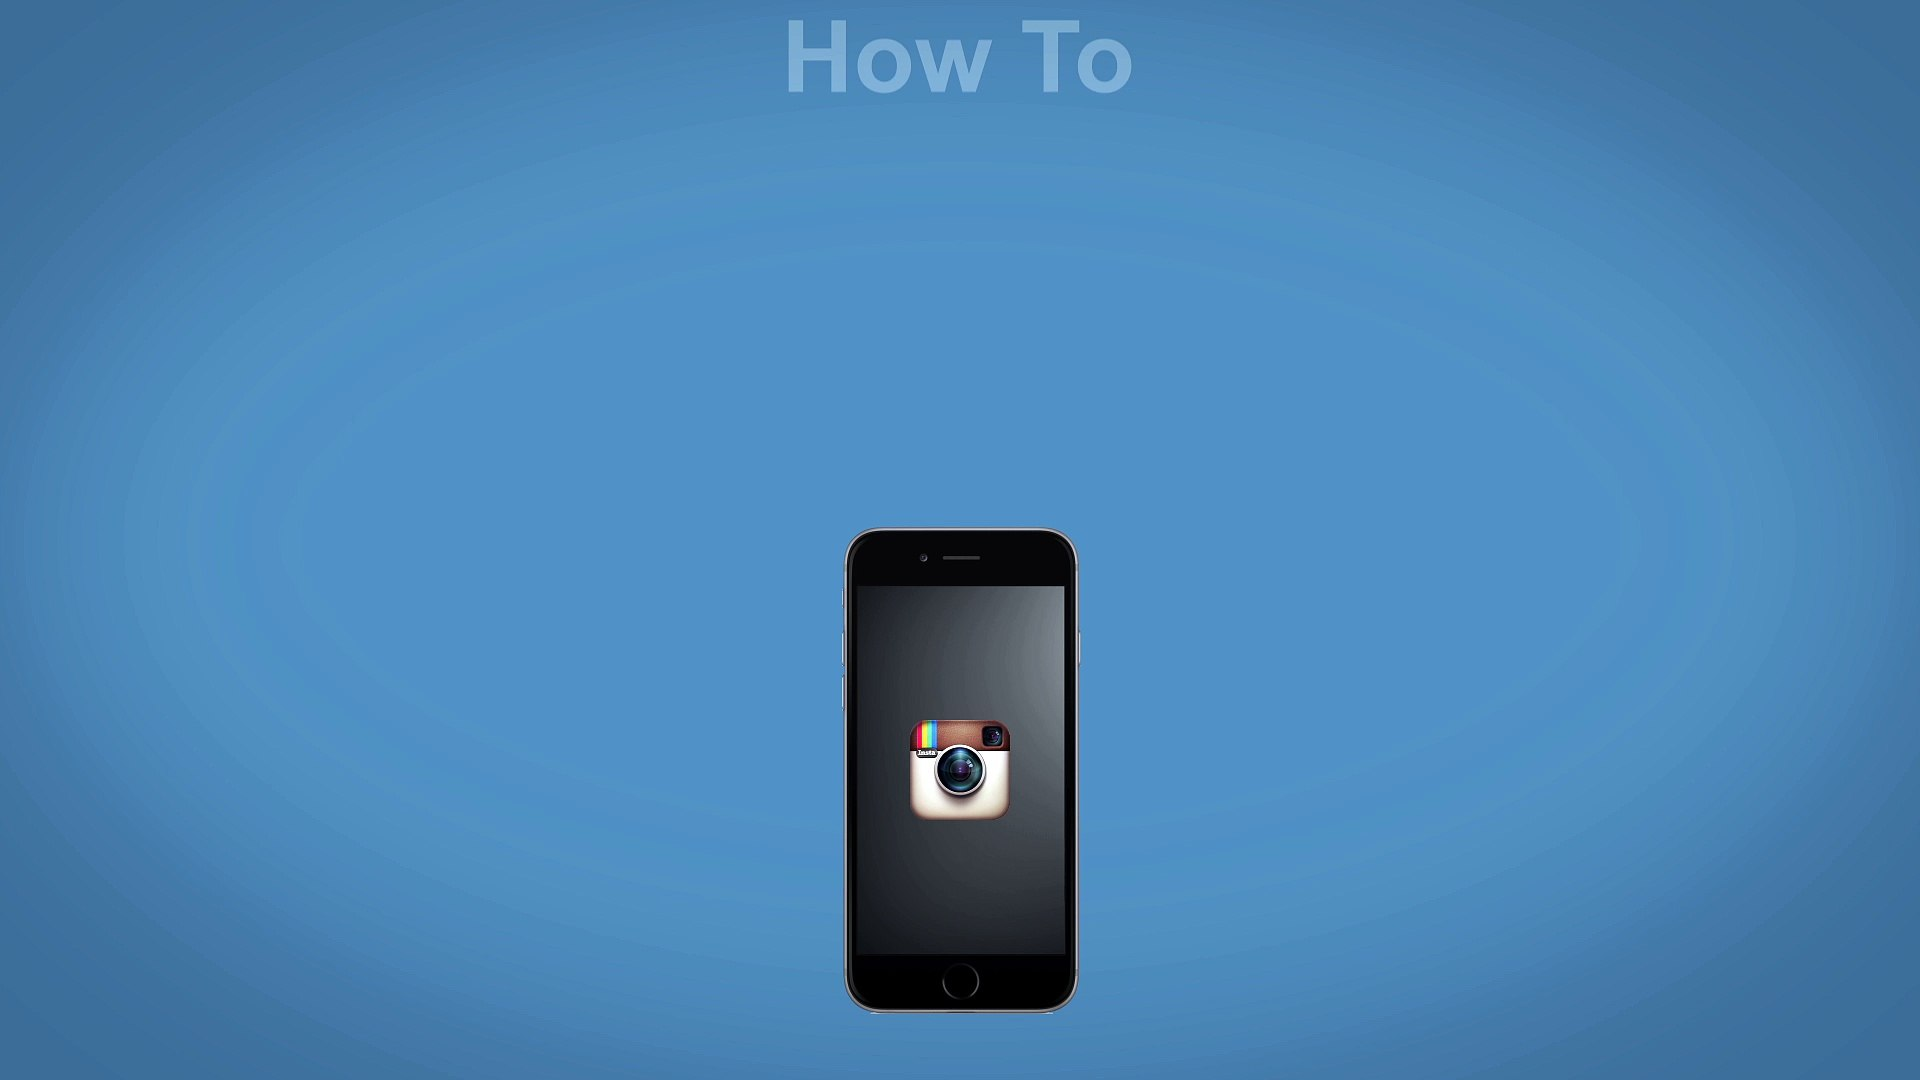 How To Edit Your Photos On Instagram Photos - Instagram Tip 10